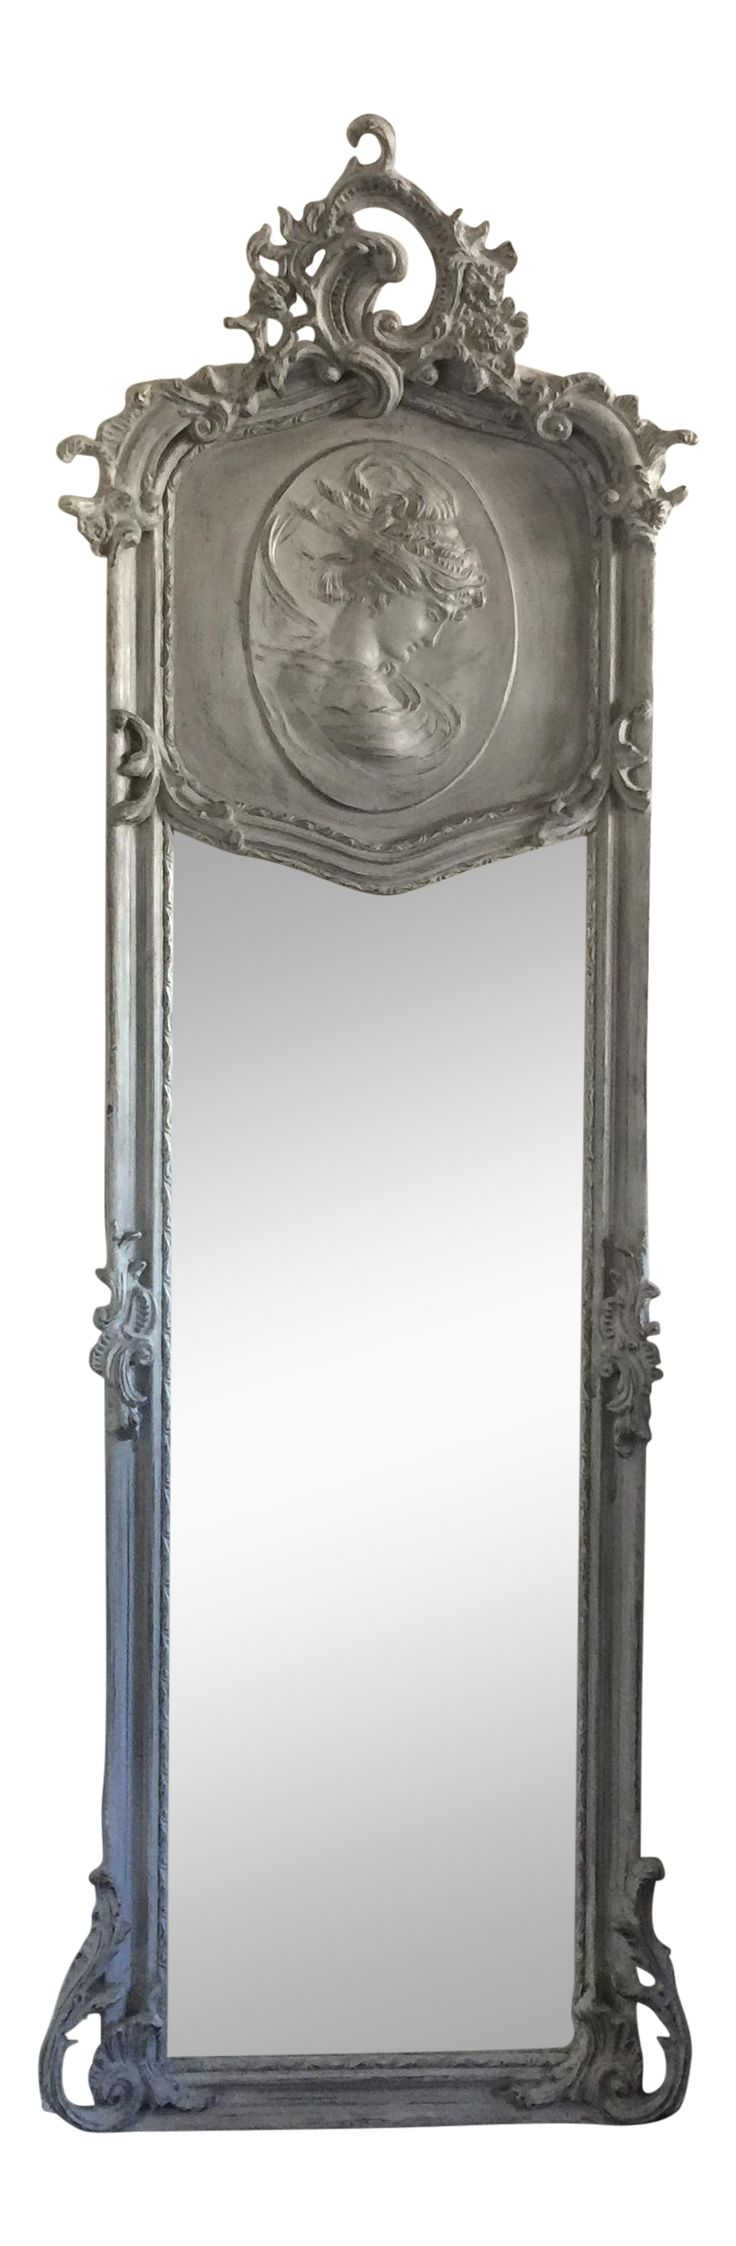 Best 25+ Beveled mirror ideas on Pinterest | Long mirror, Silver bedroom  decor and Bedroom mirrors